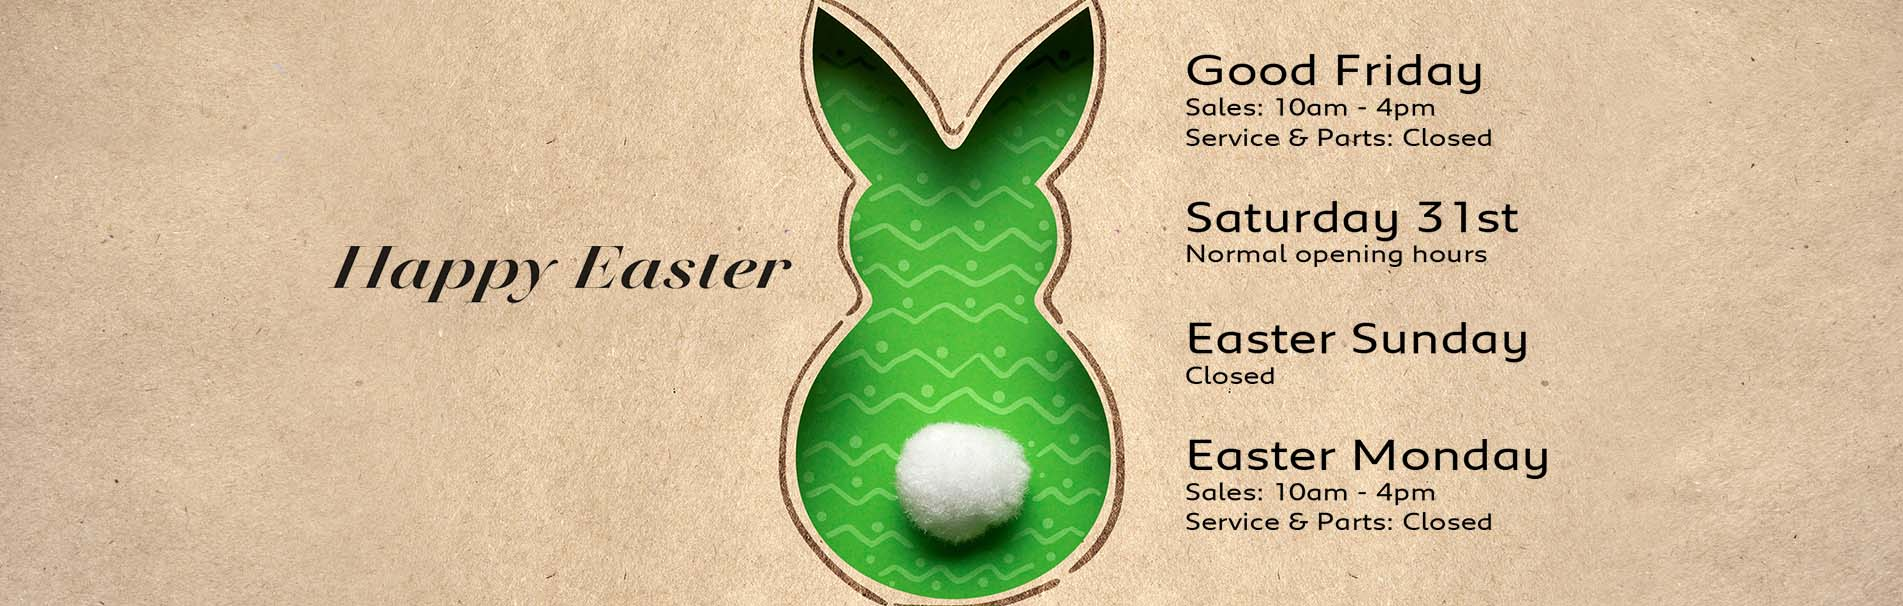 charters-car-dealership-easter-opening-hours-sli